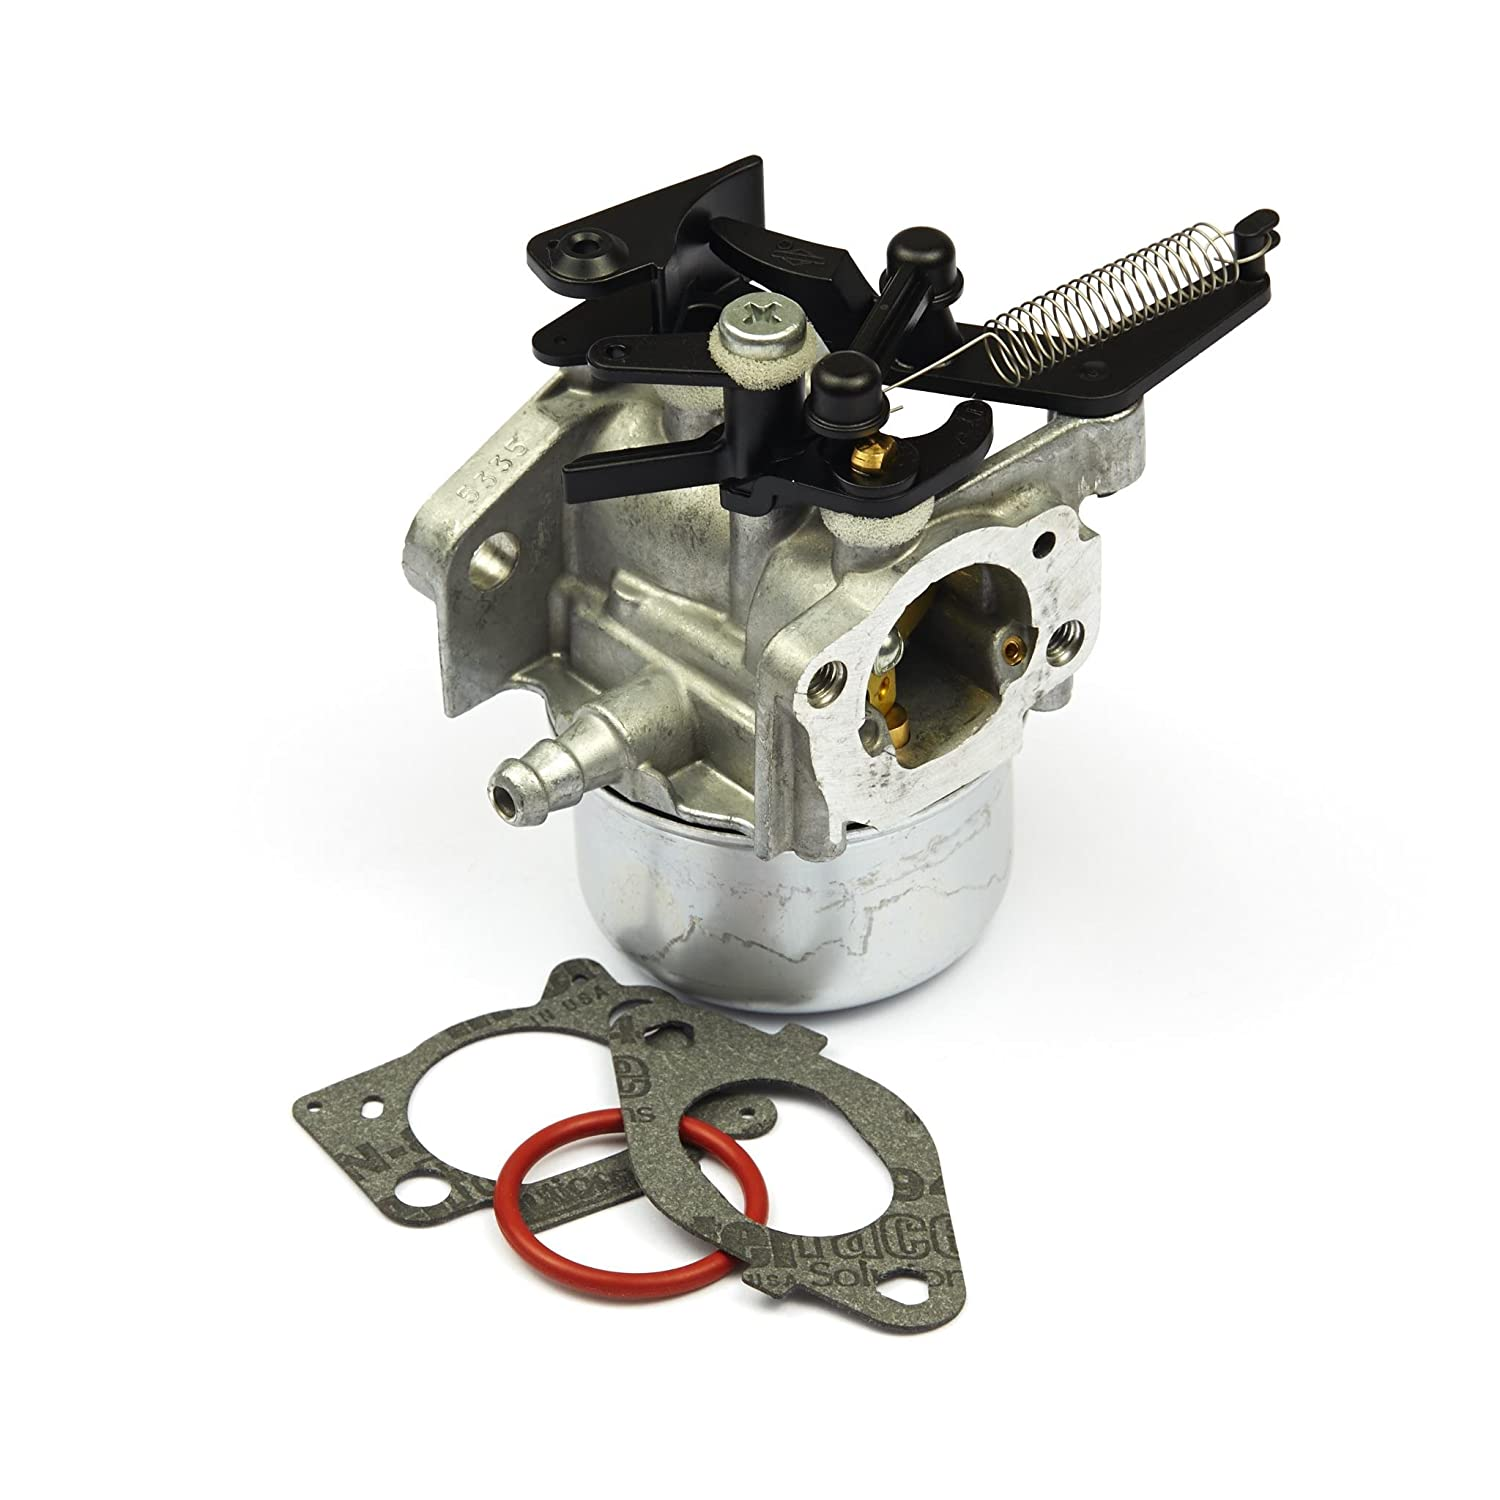 Briggs & Stratton 796608 Carburetor